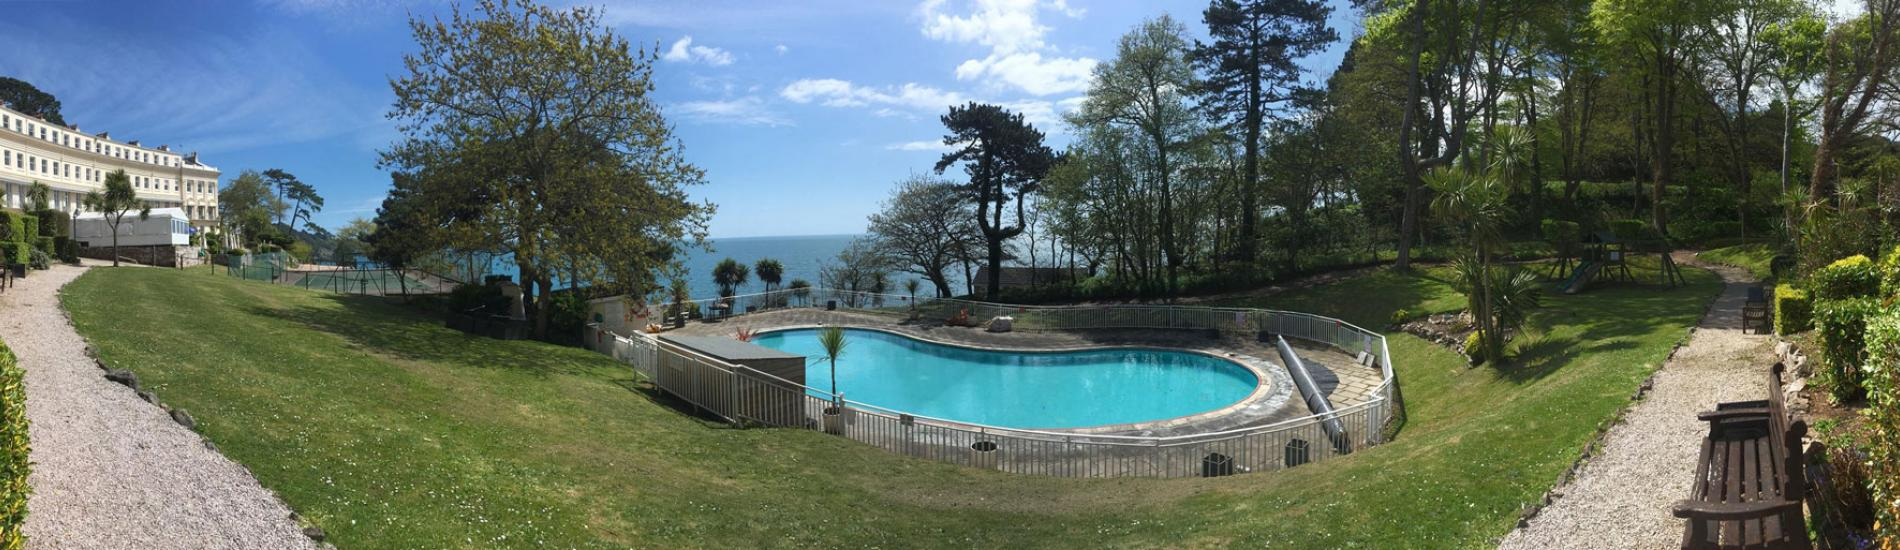 Swimming Pool at The Osborne Hotel Torquay Devon